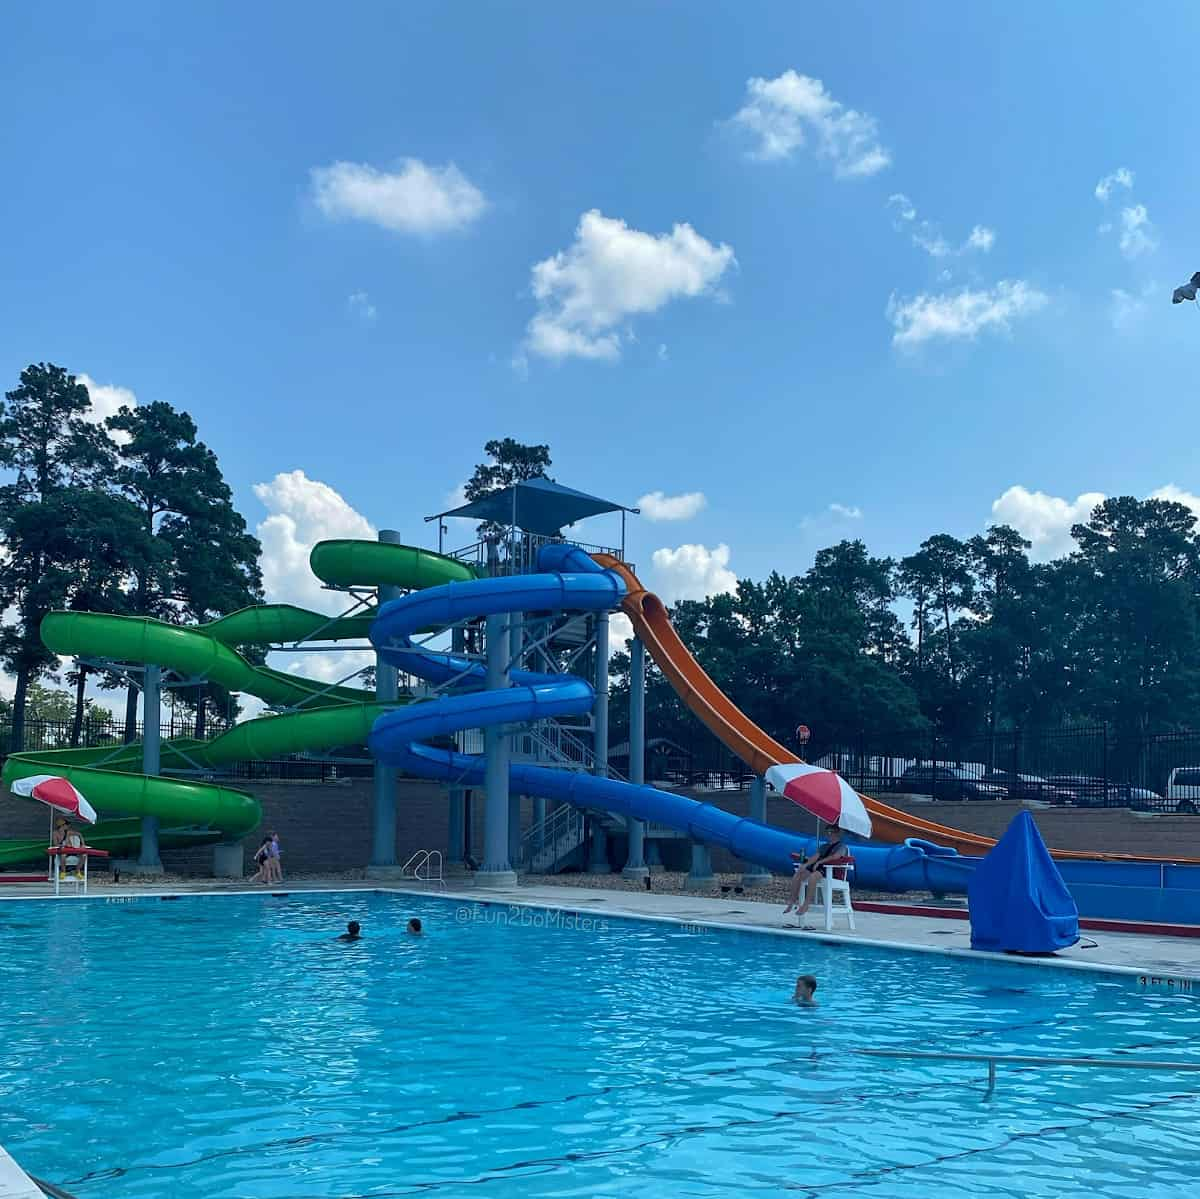 Conroe Water Park Pool and Slides